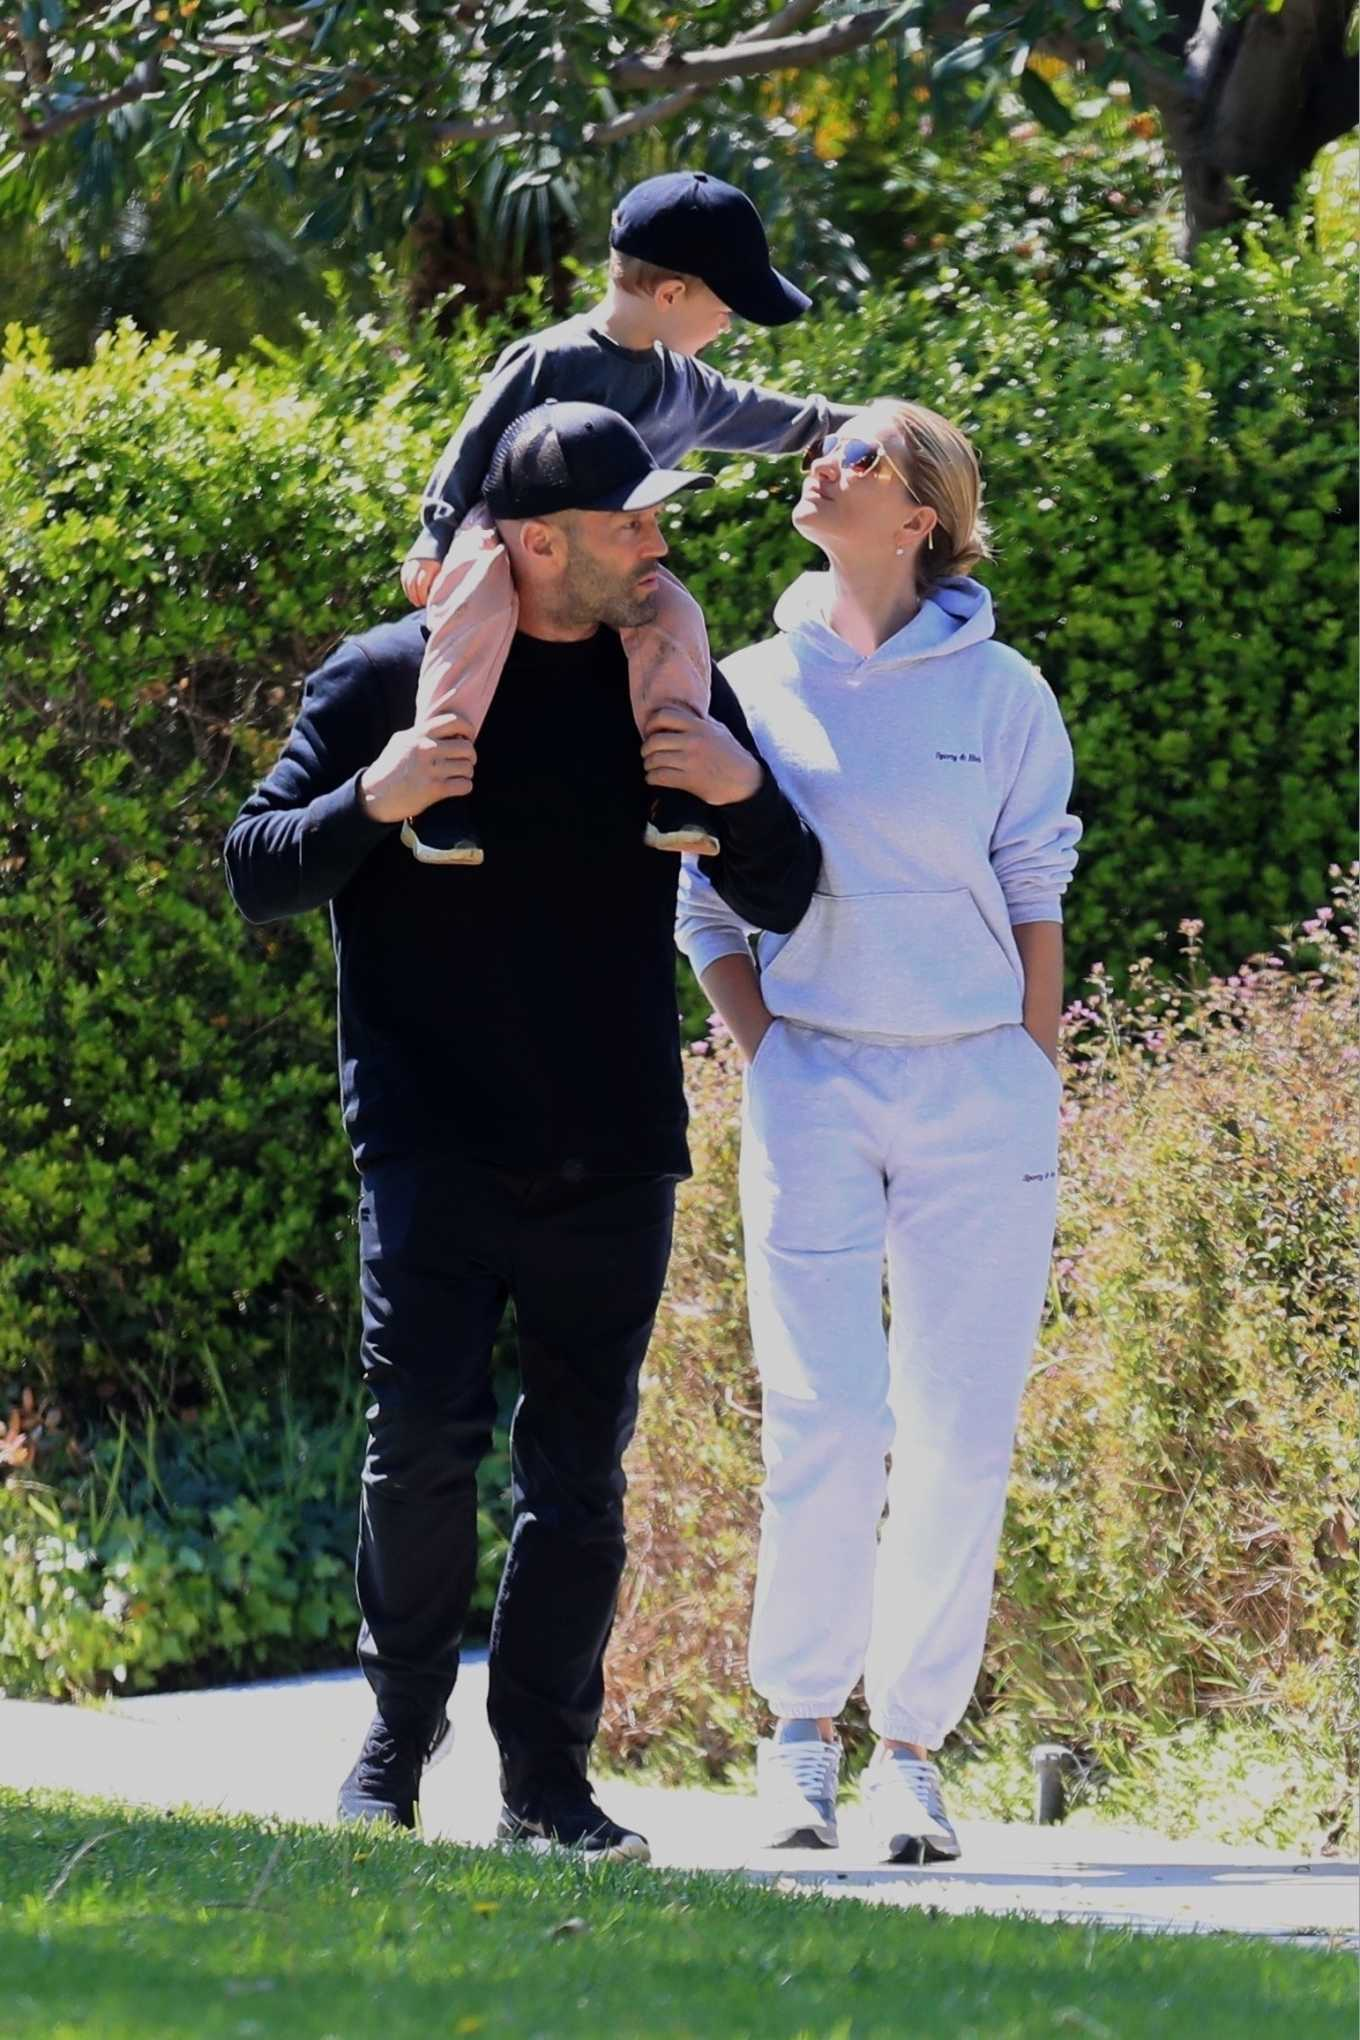 Rosie Huntington-Whiteley 2020 : Rosie Huntington-Whiteley – Out for a walk with a family in Beverly Hills -09